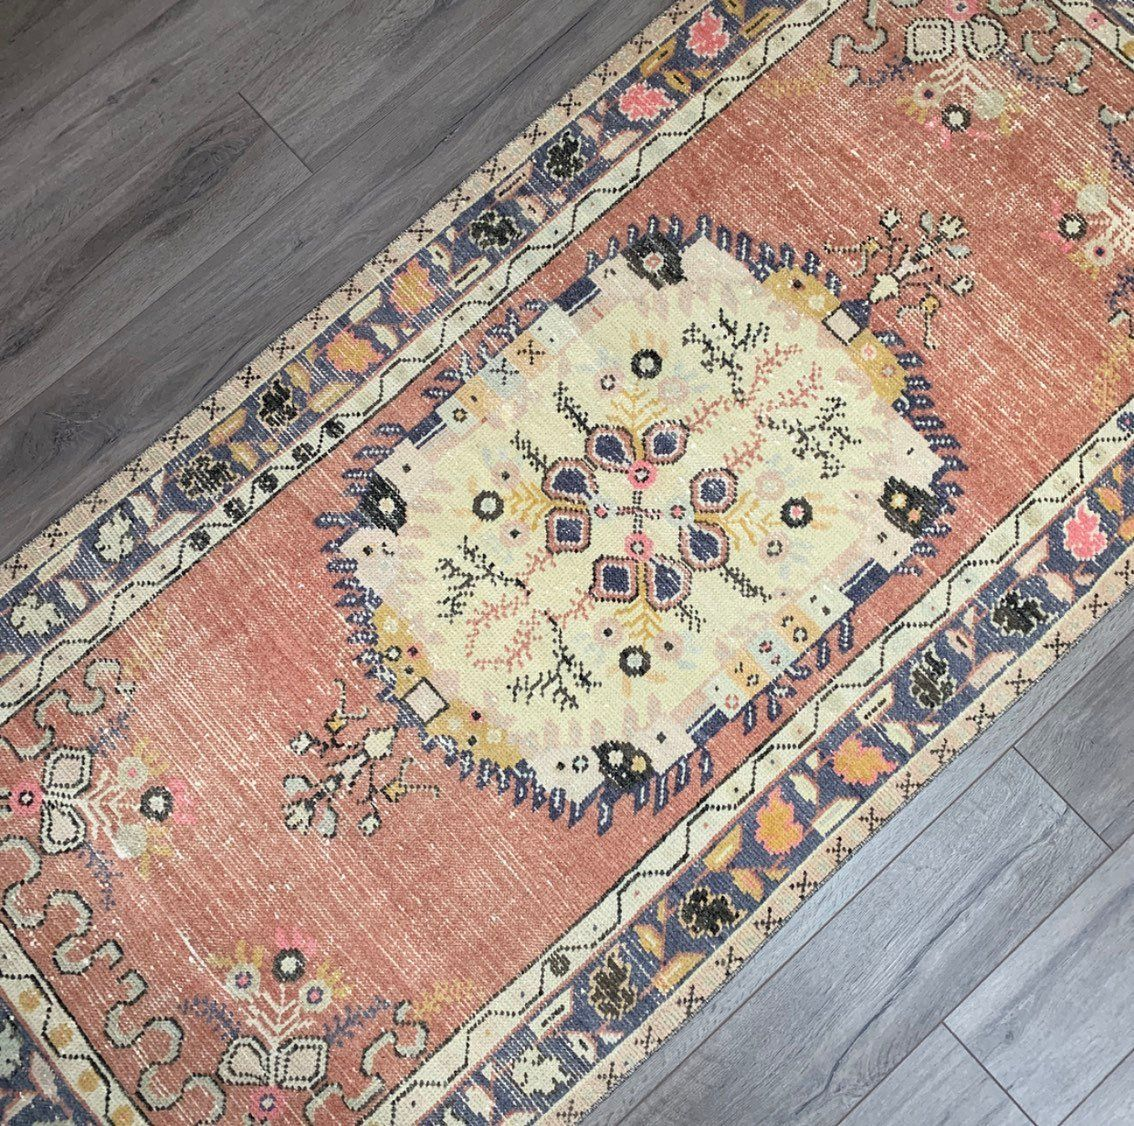 6 7 X 3 1 Low Pile Vintage 1940s Turkish Anatolian Rug Sometimes Called Oushak This Rug Has A Centre Field Of Warm T Rugs Vintage Runner Rugs Mustard Rug